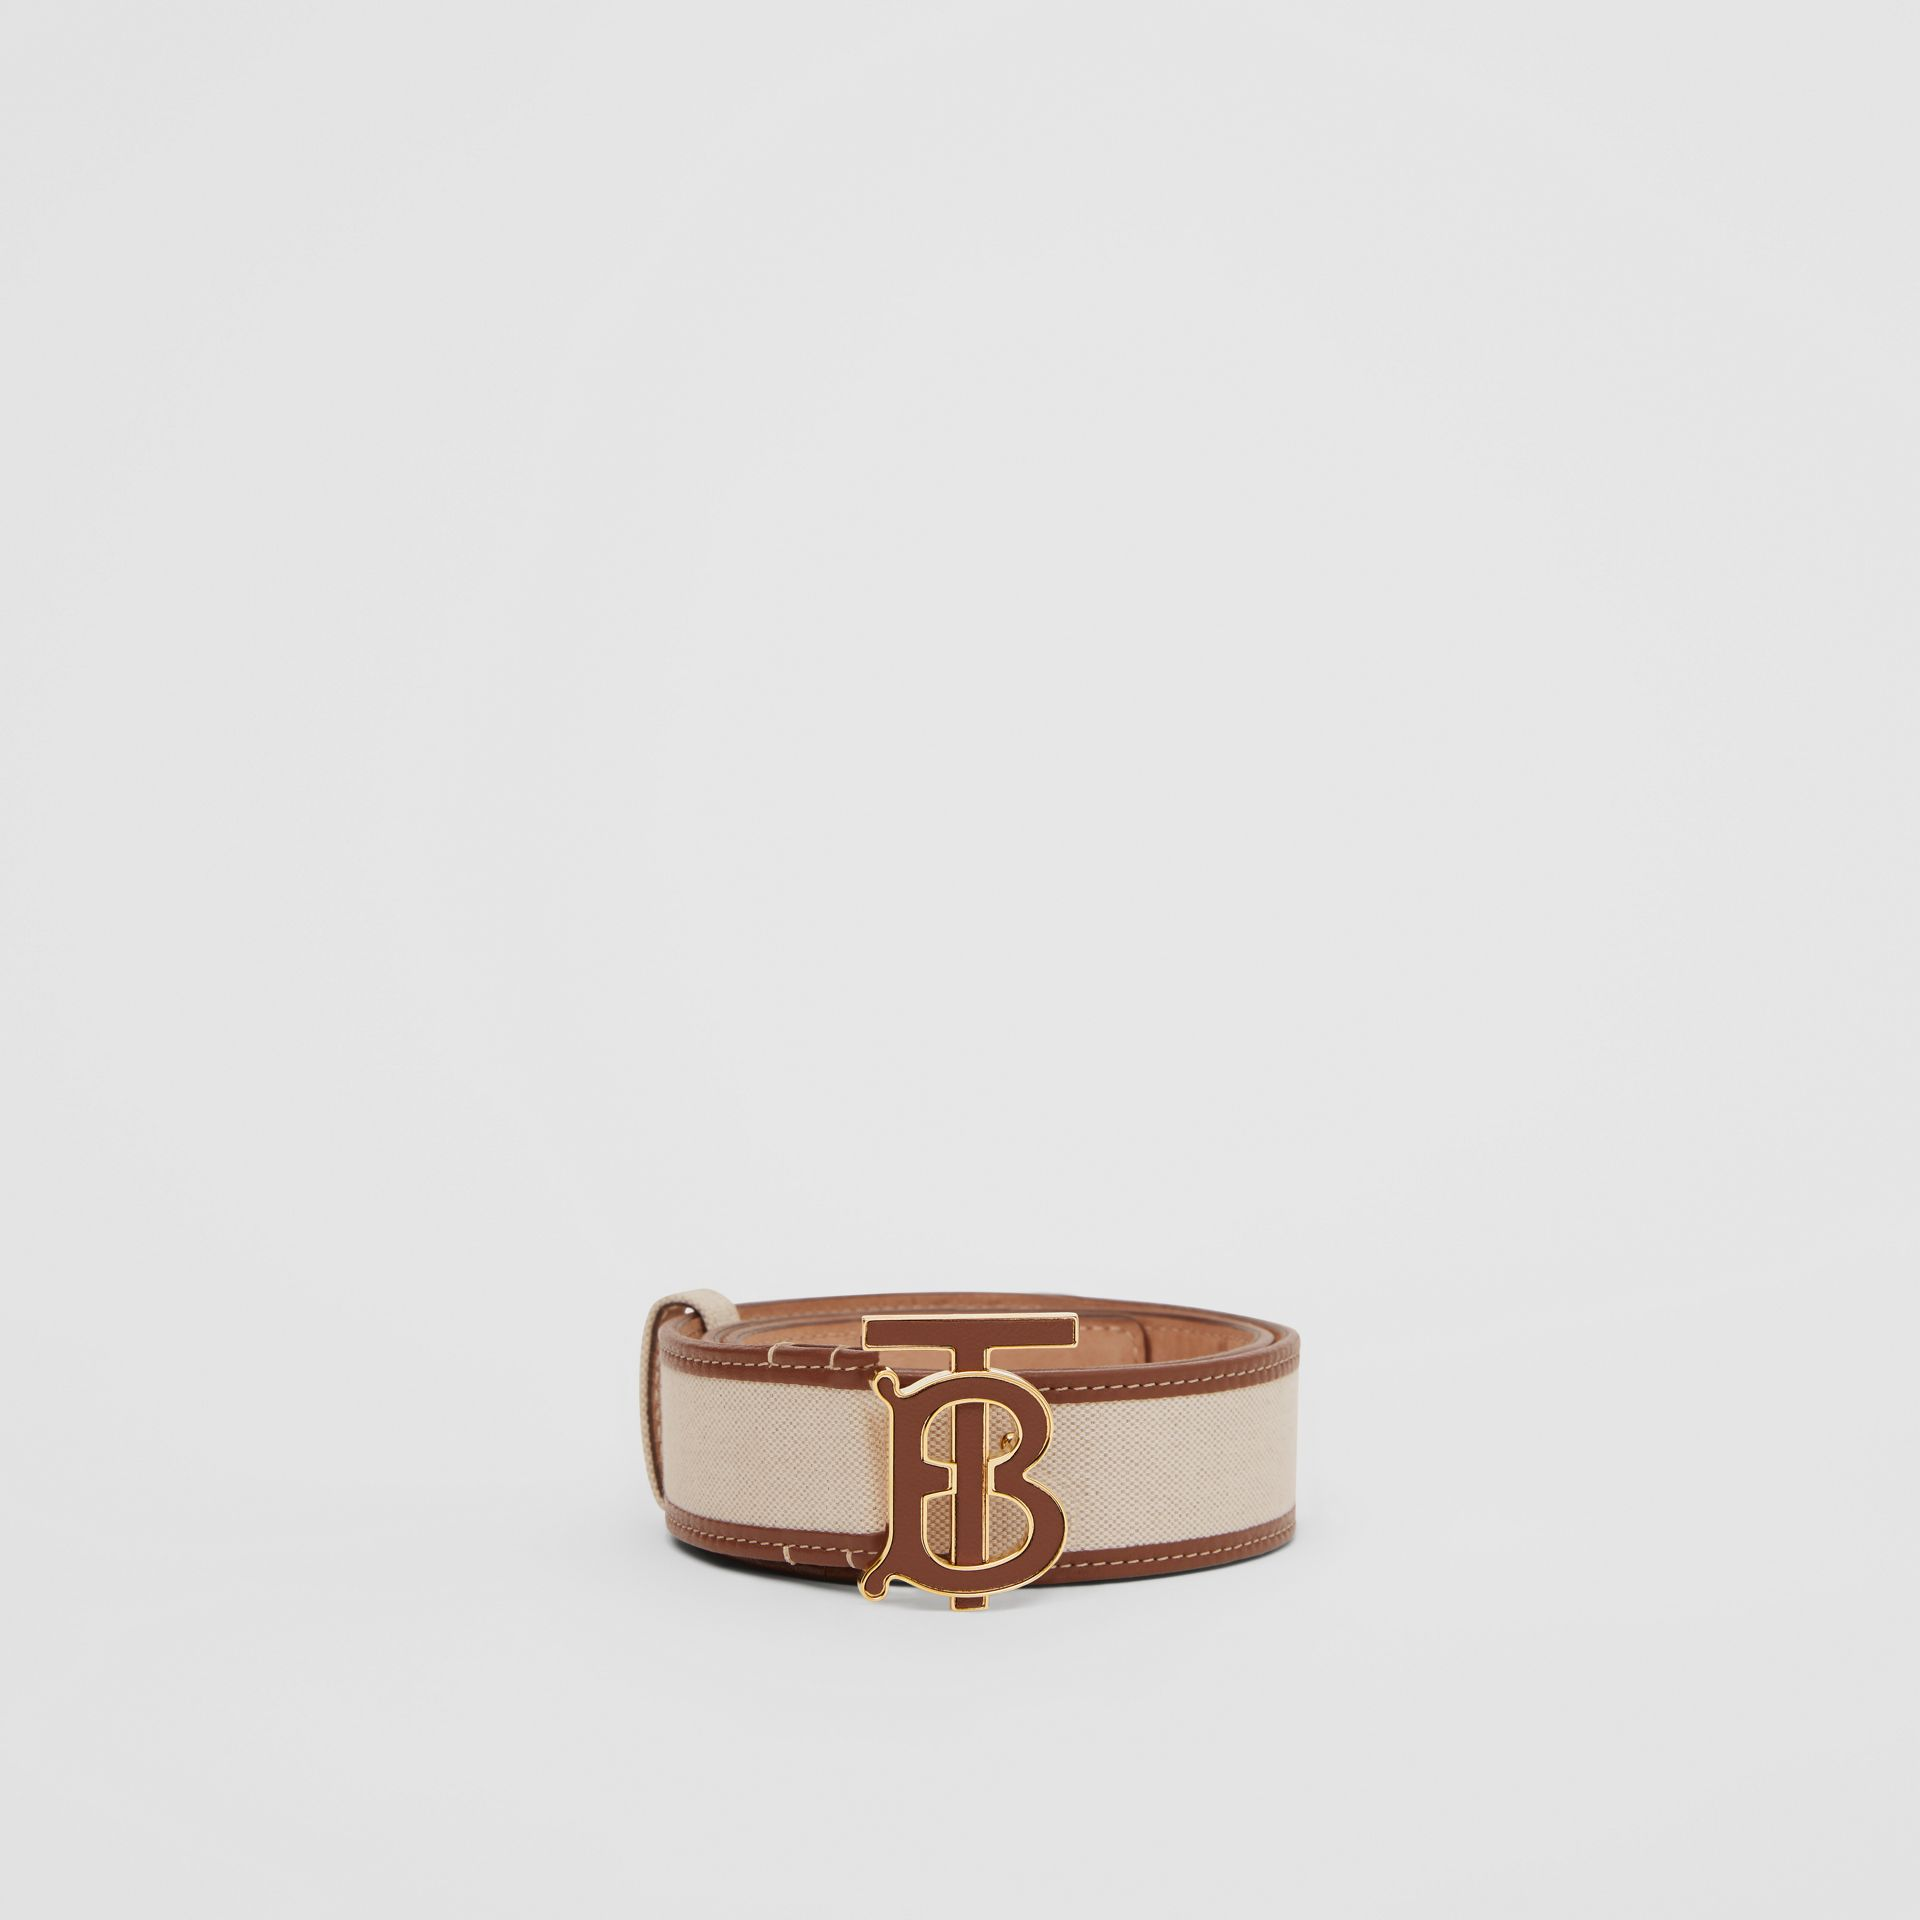 Monogram Motif Canvas and Leather Belt in Natural - Women | Burberry United Kingdom - gallery image 2